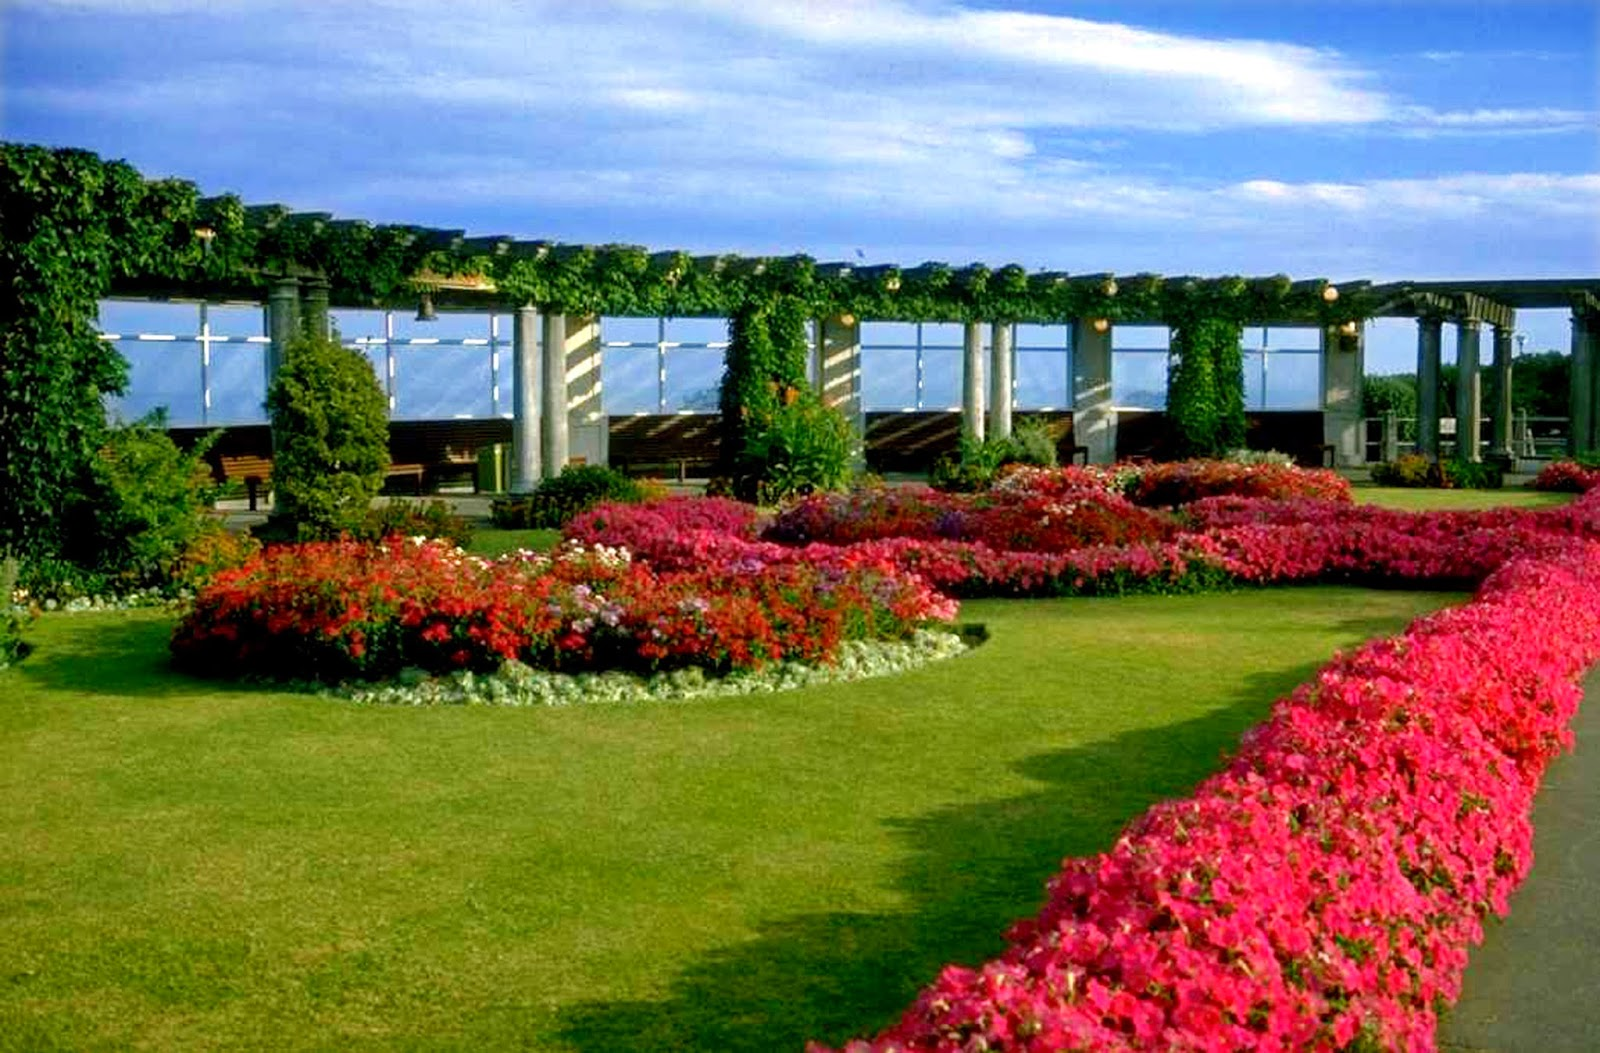 Top 10 Punto Medio Noticias Garden Background Hd Photo Download